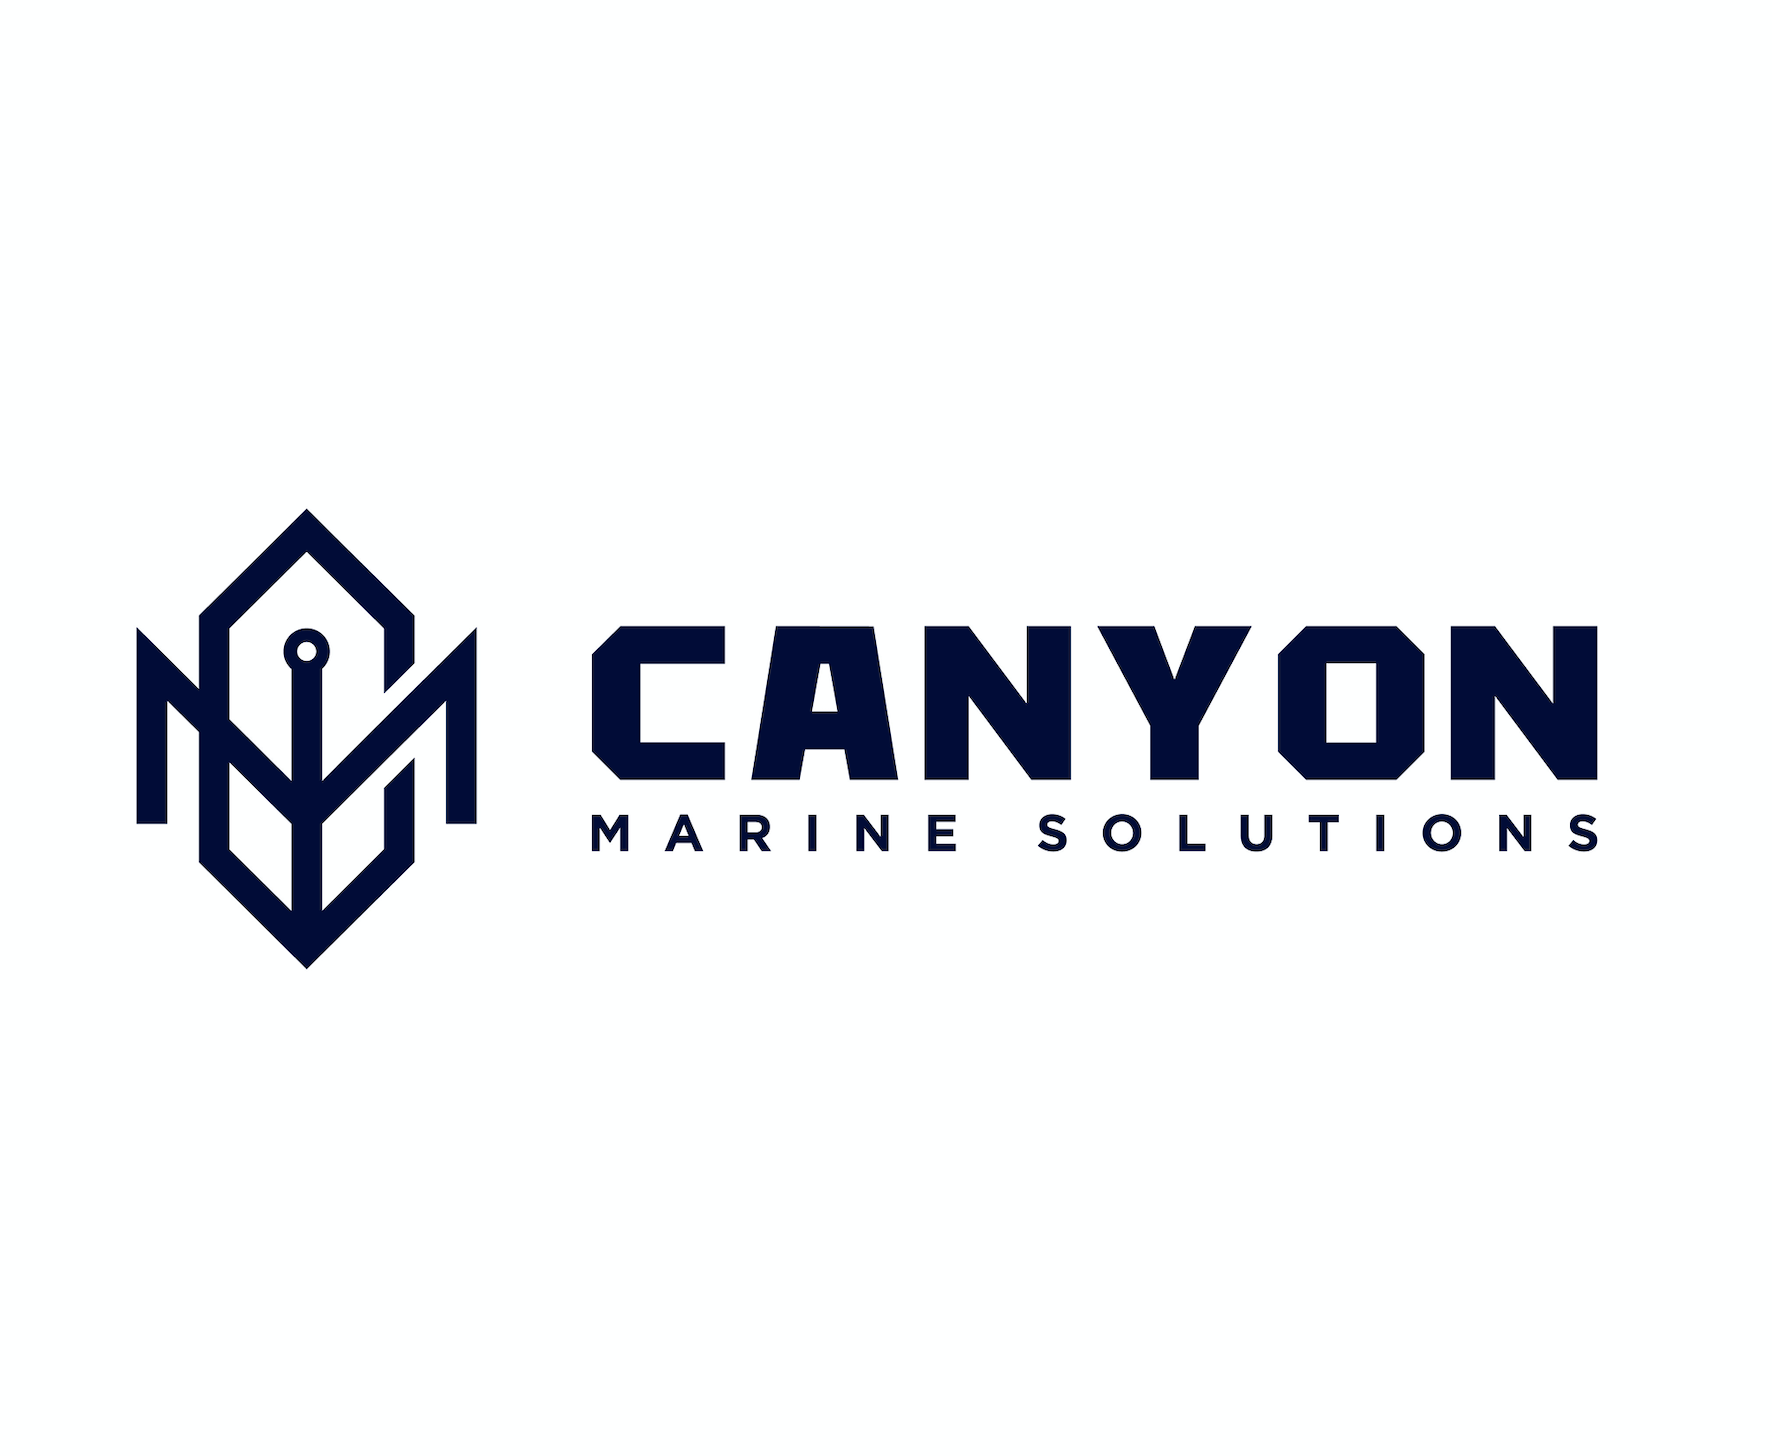 Canyon Marine Solutions